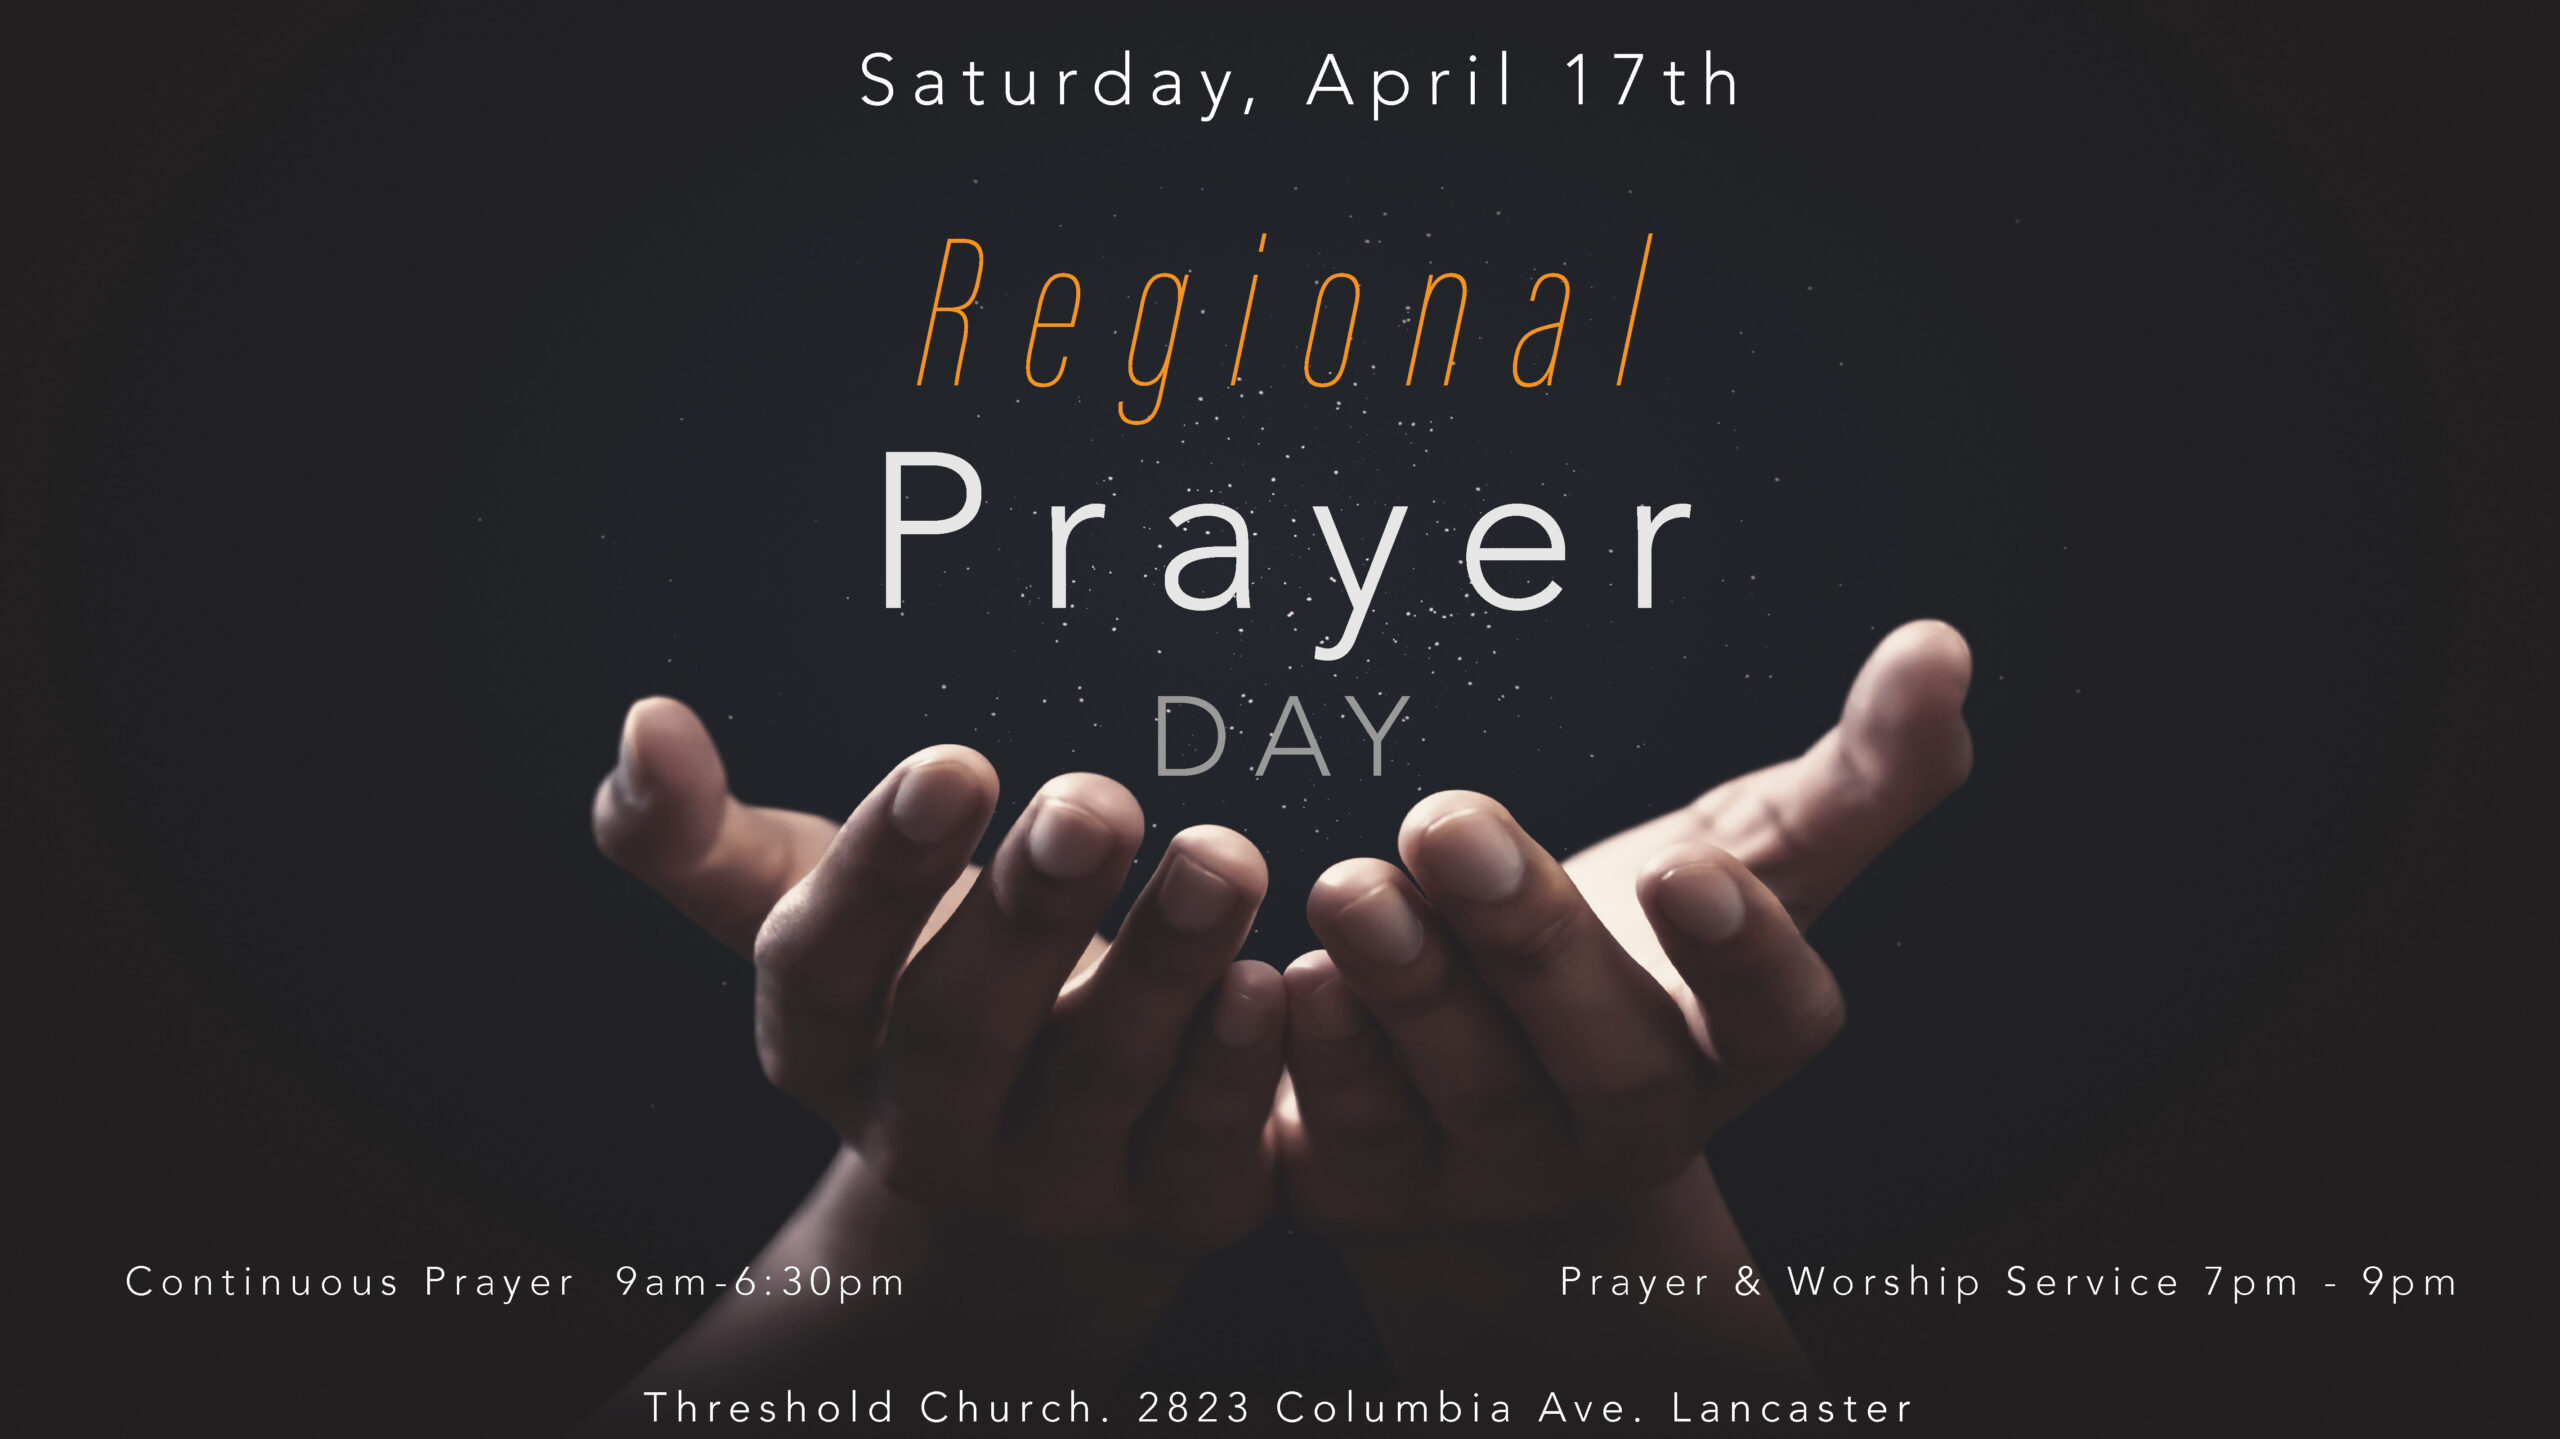 Day of Worship and Intercession for the Region!